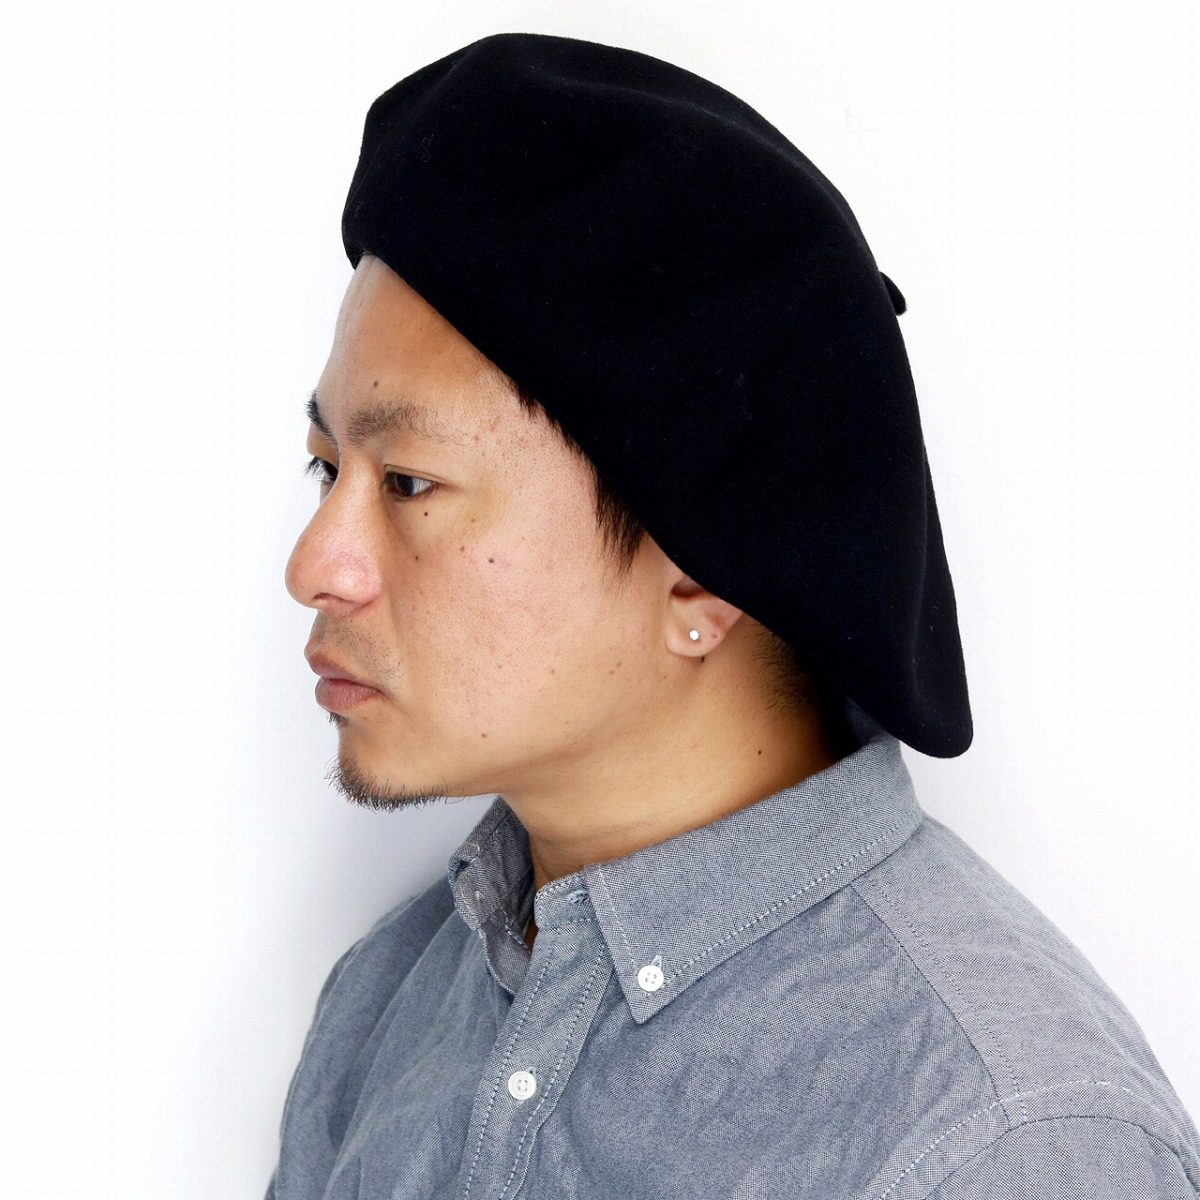 ELEHELM HAT STORE  Product made in felt over size beret hat LAULHERE 58cm  60cm France beret plain fabric Shin pull Paris Schick accessory   black  black ... 6ac34239cae